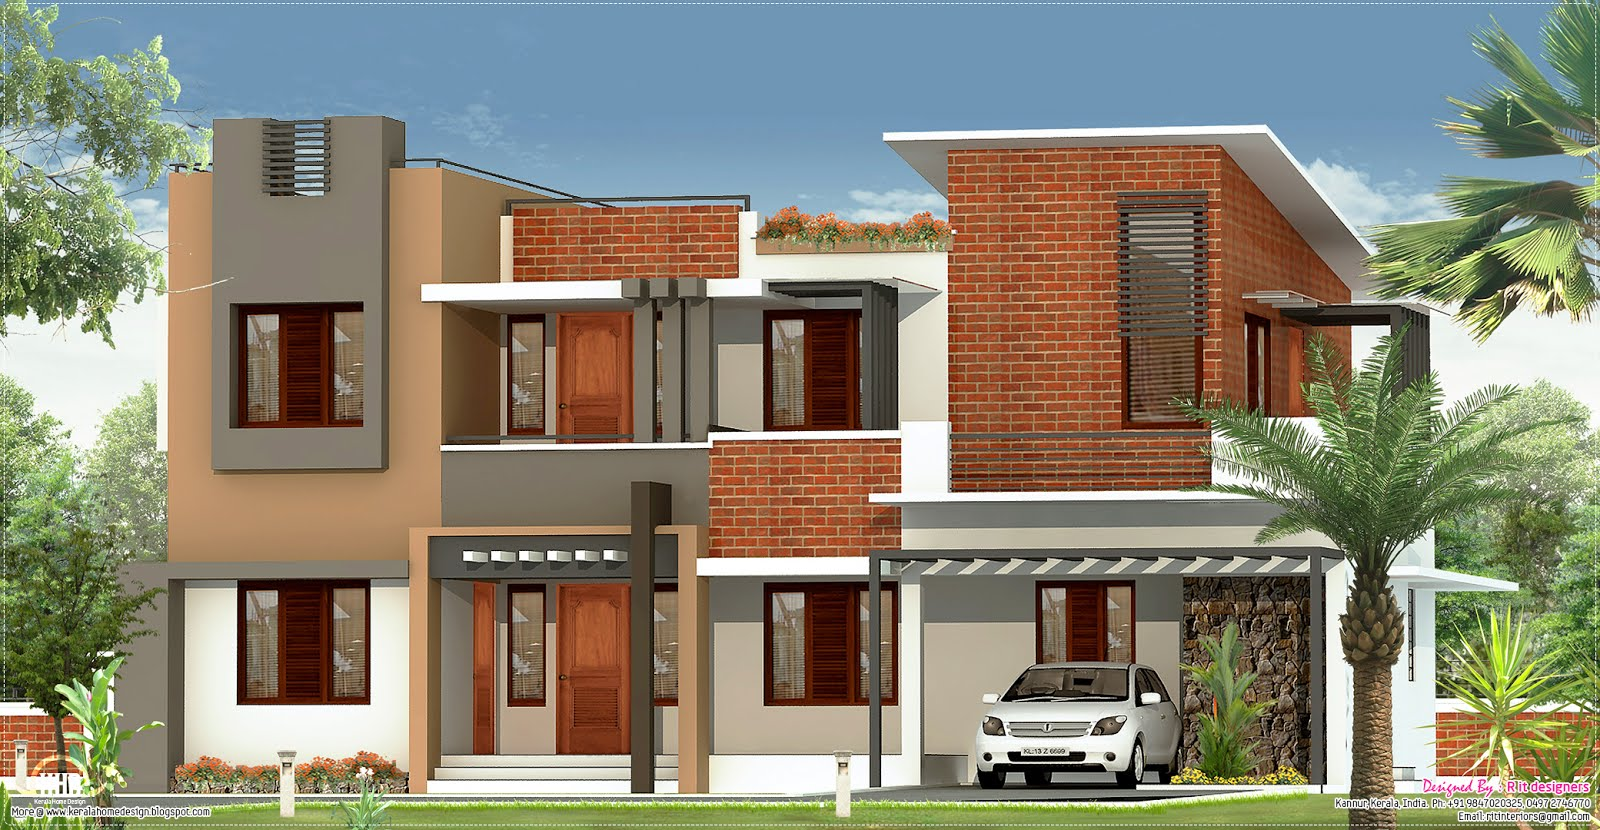 Flat Roof Design Flat Roof Villa Design By R It Designers Kannur